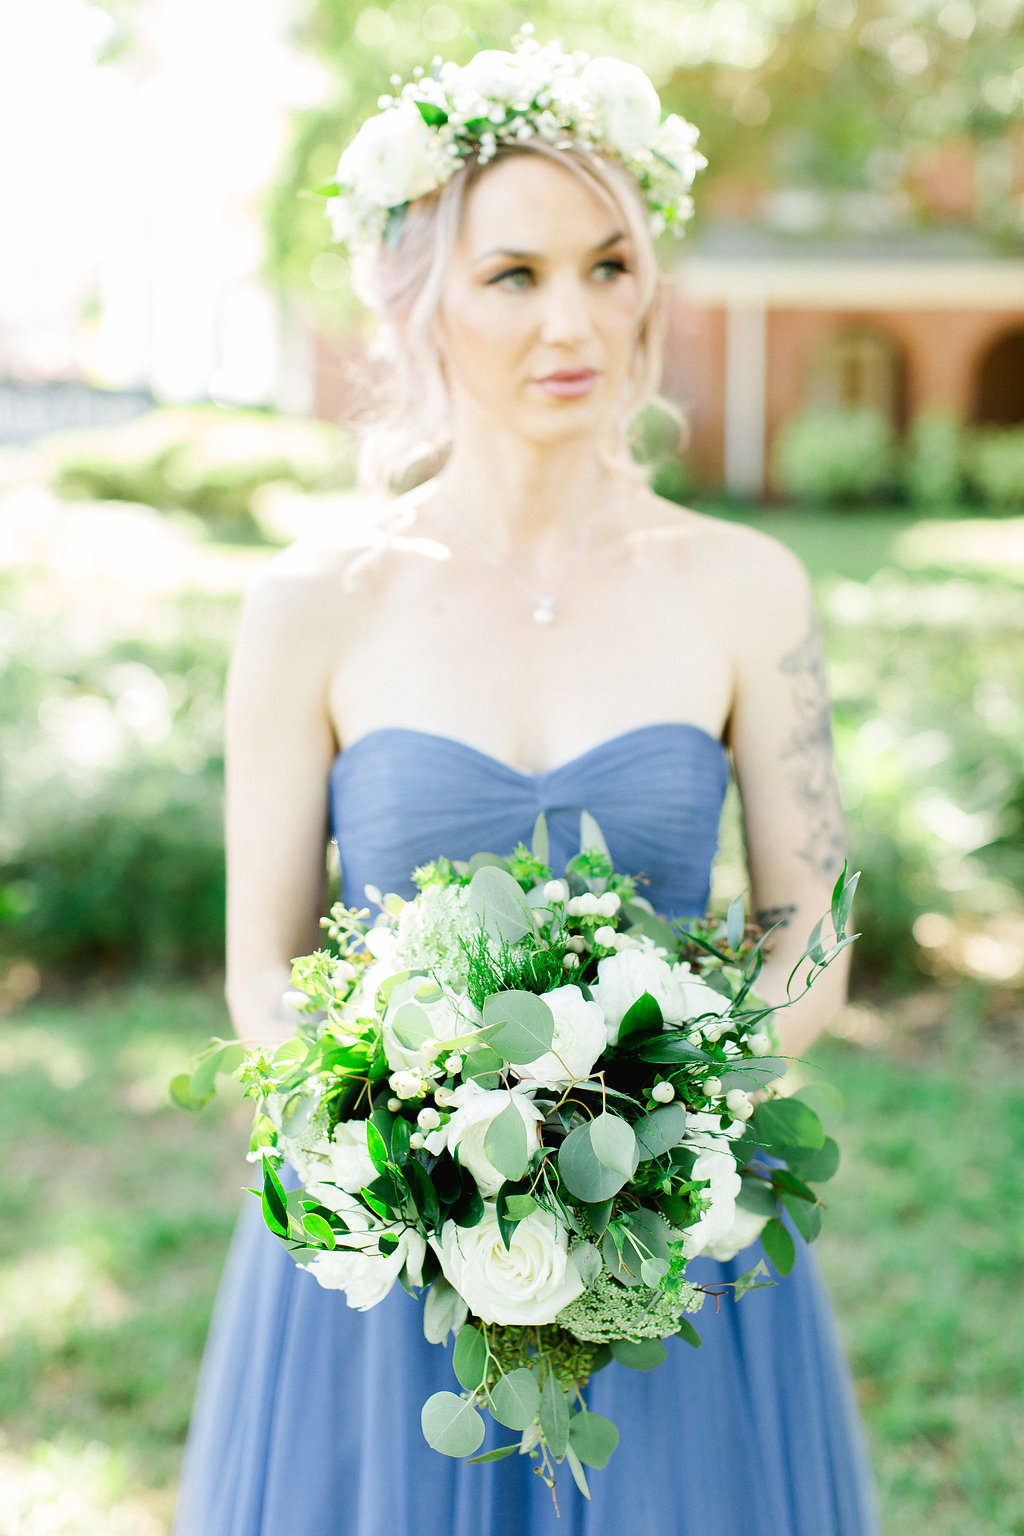 Tampa Bridesmaid in Blue Strapless Dress and White Flower Crown with Organic White, Ivory and Greenery Floral Bouquet